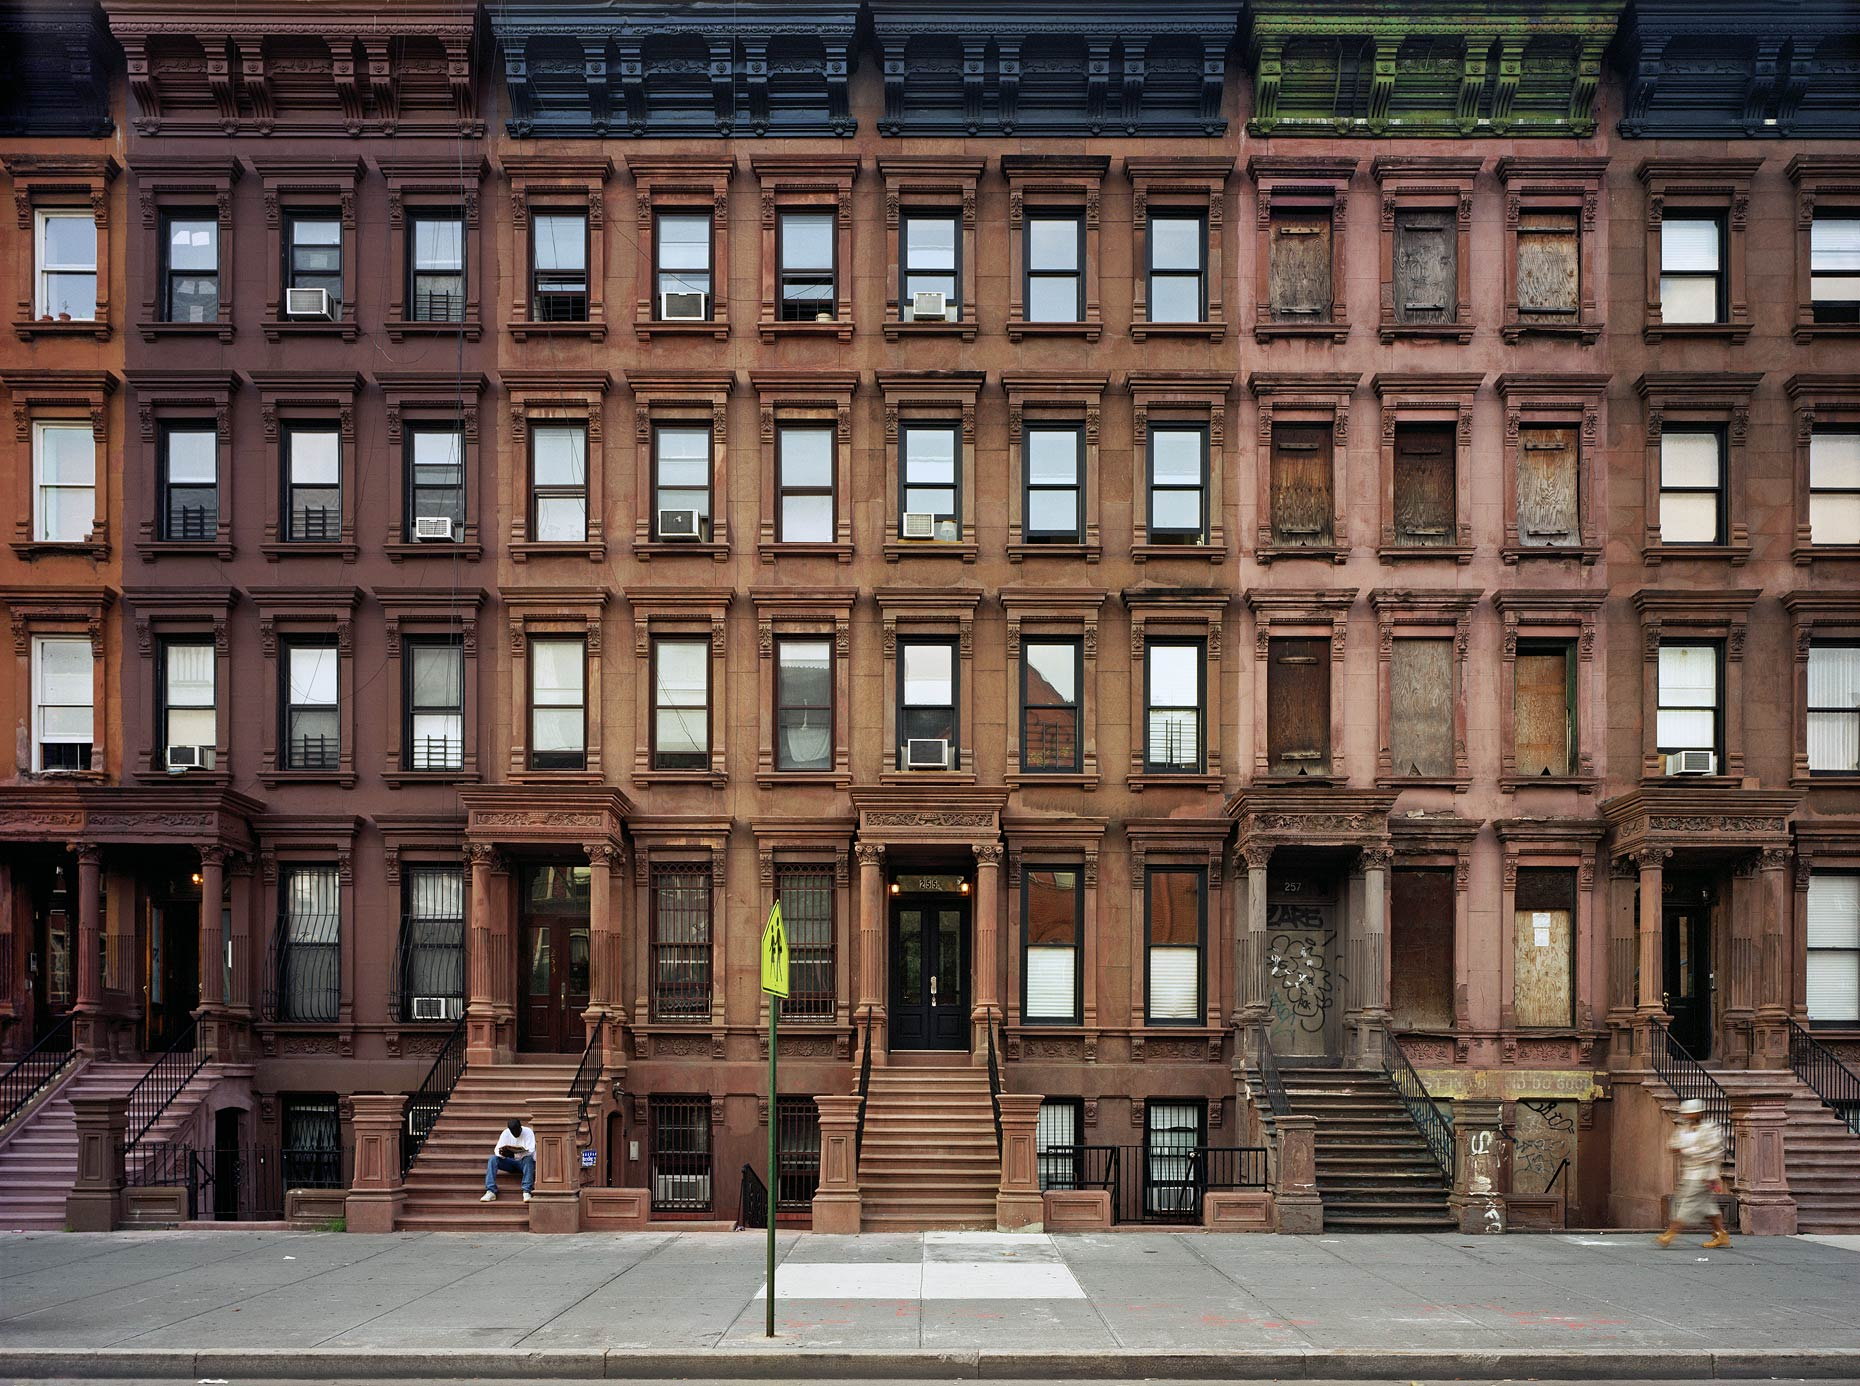 Brownstones, Lenox Avenue, Harlem, New York